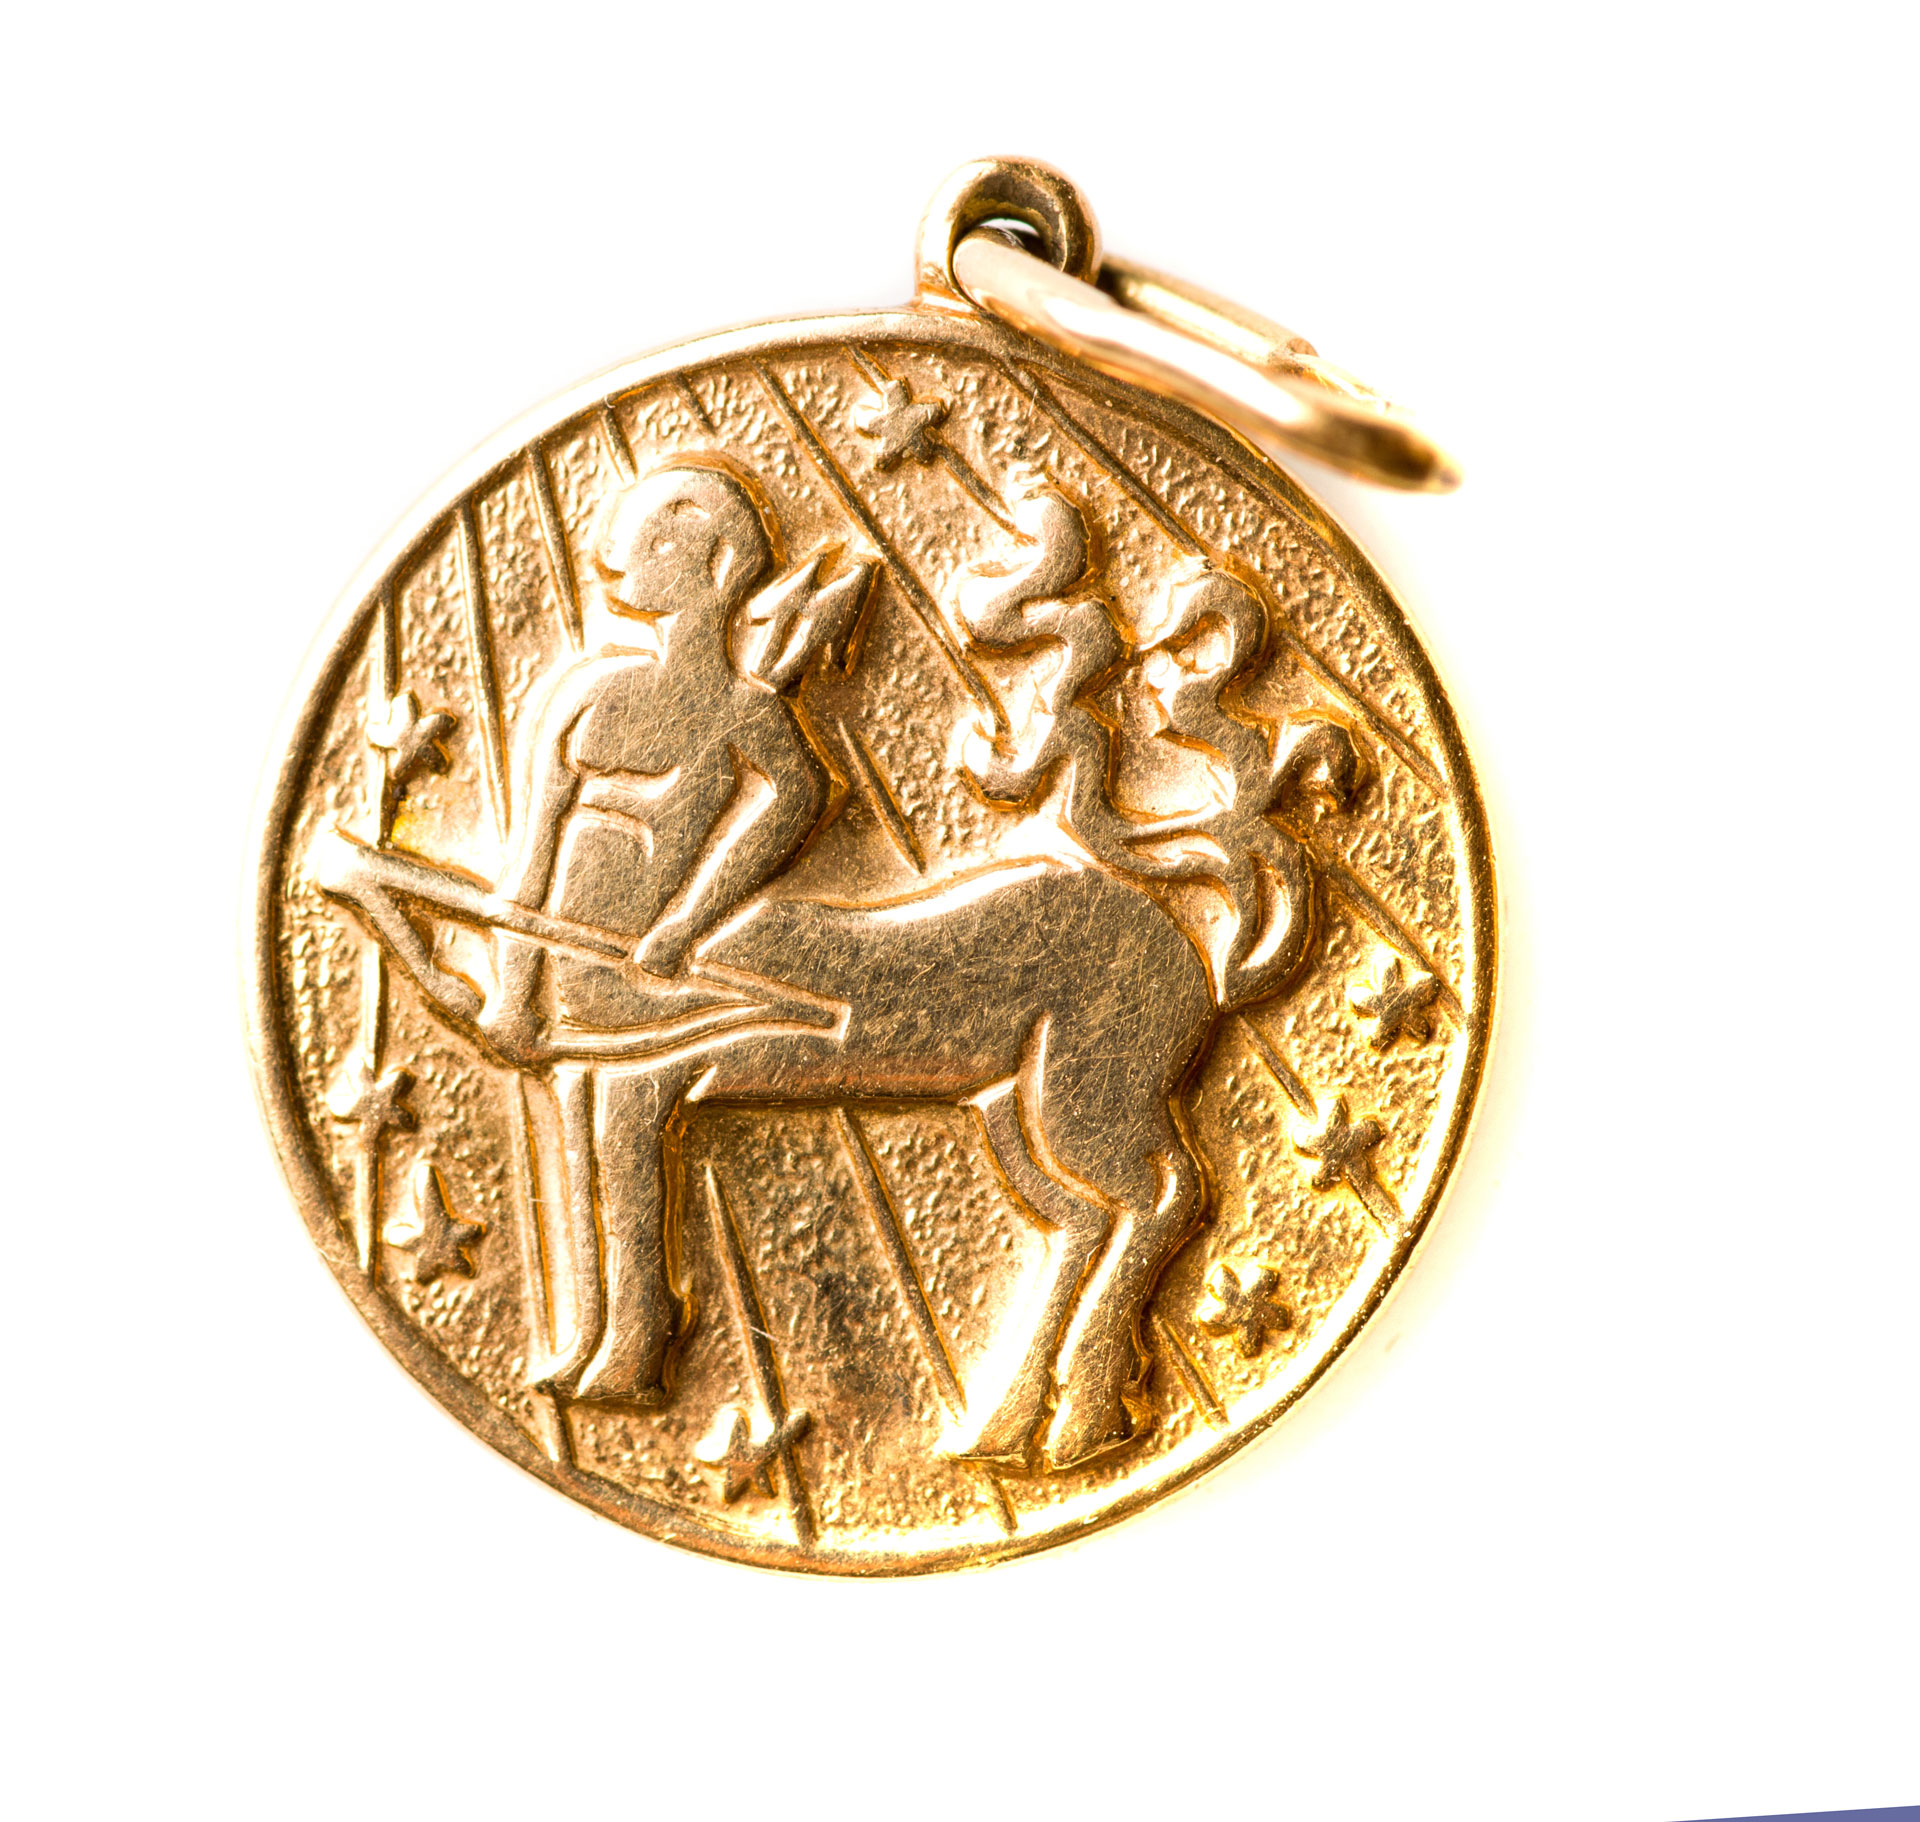 gold jewelry with centaur figure